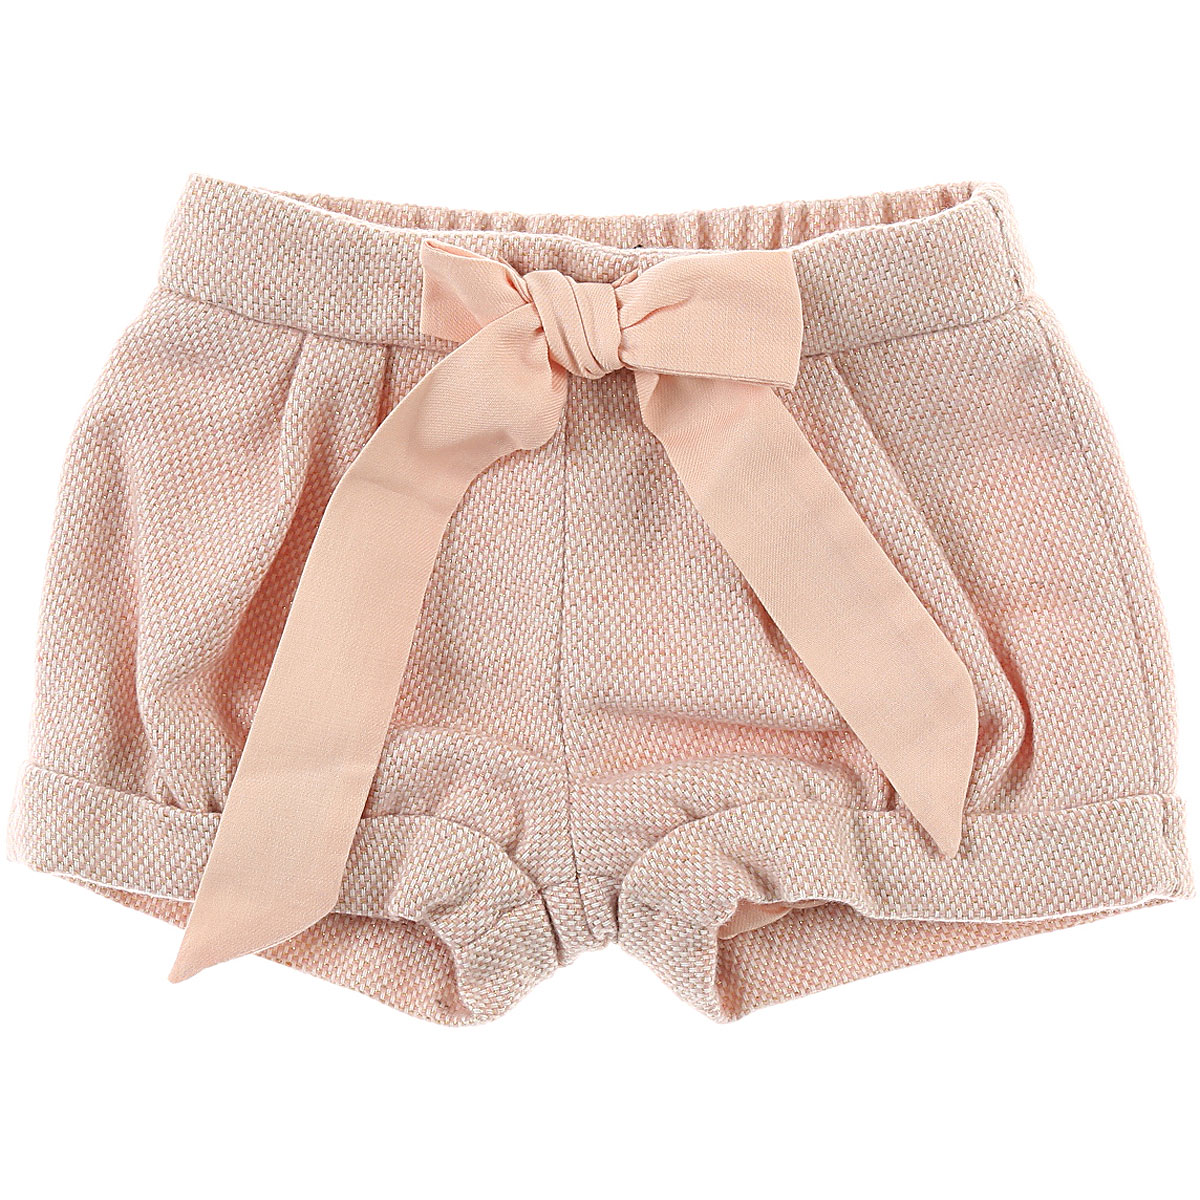 Image of Chloe Baby Shorts for Girls, Pink, Acrylic, 2017, 12M 18M 2Y 3Y 6M 9M